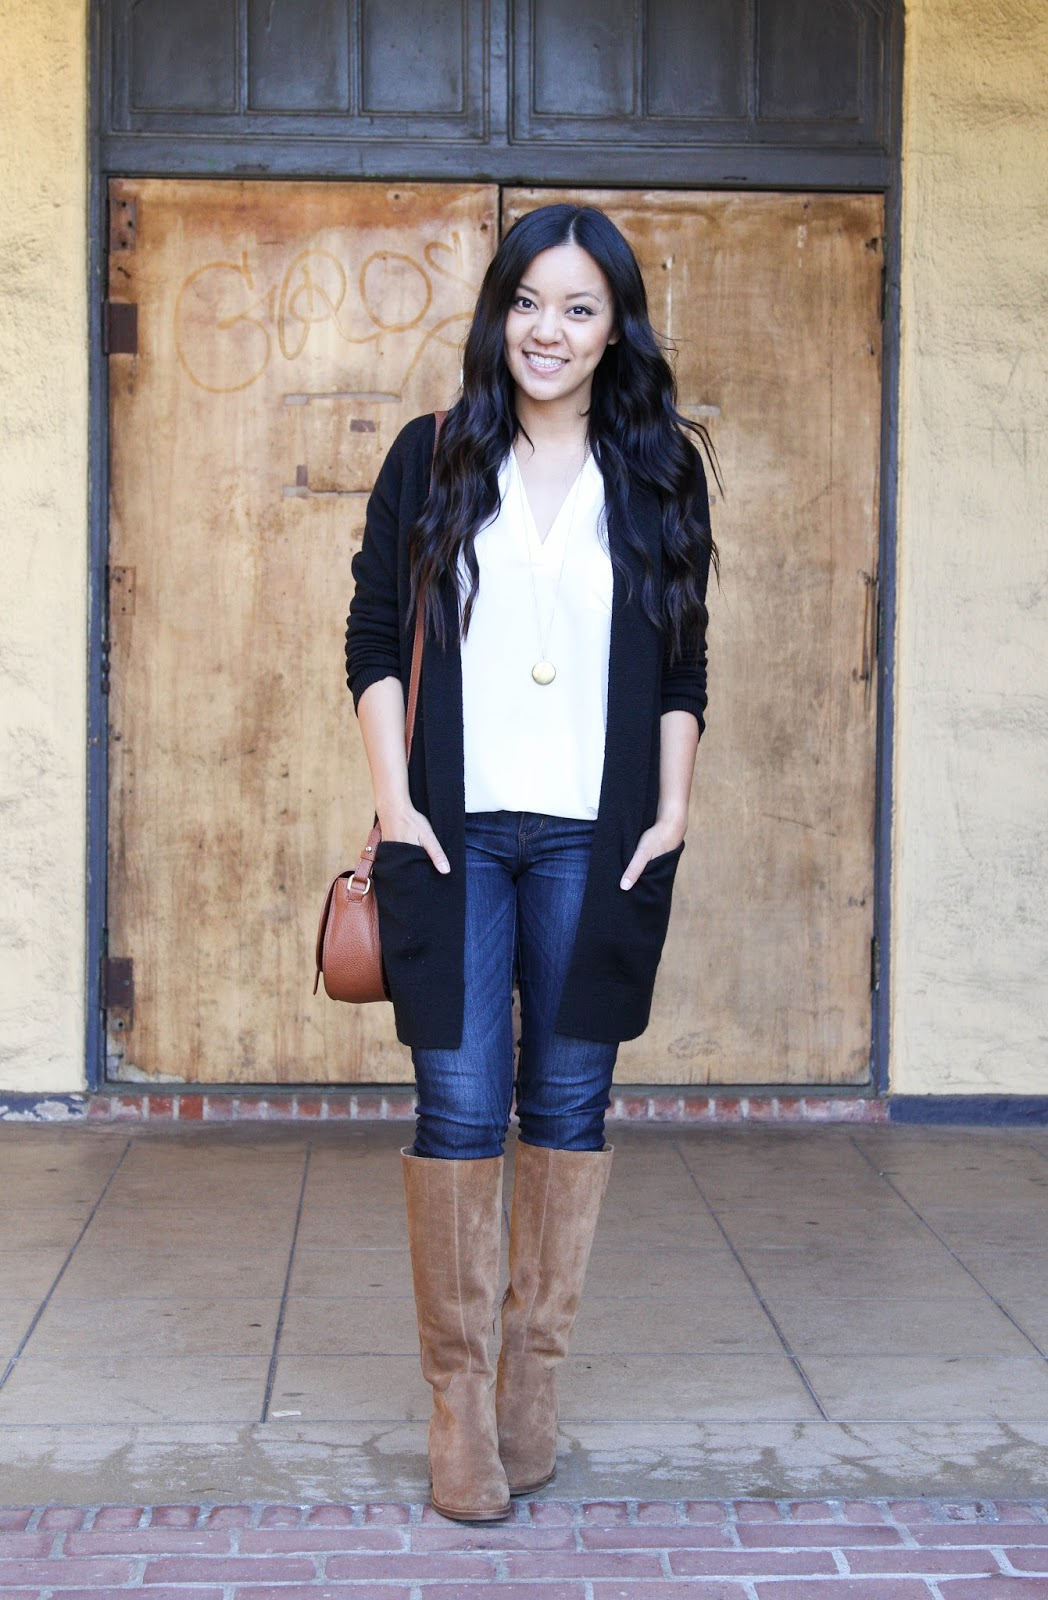 Black Cardigan + White Blouse + Pendant Necklace + Skinnies + Riding Boots